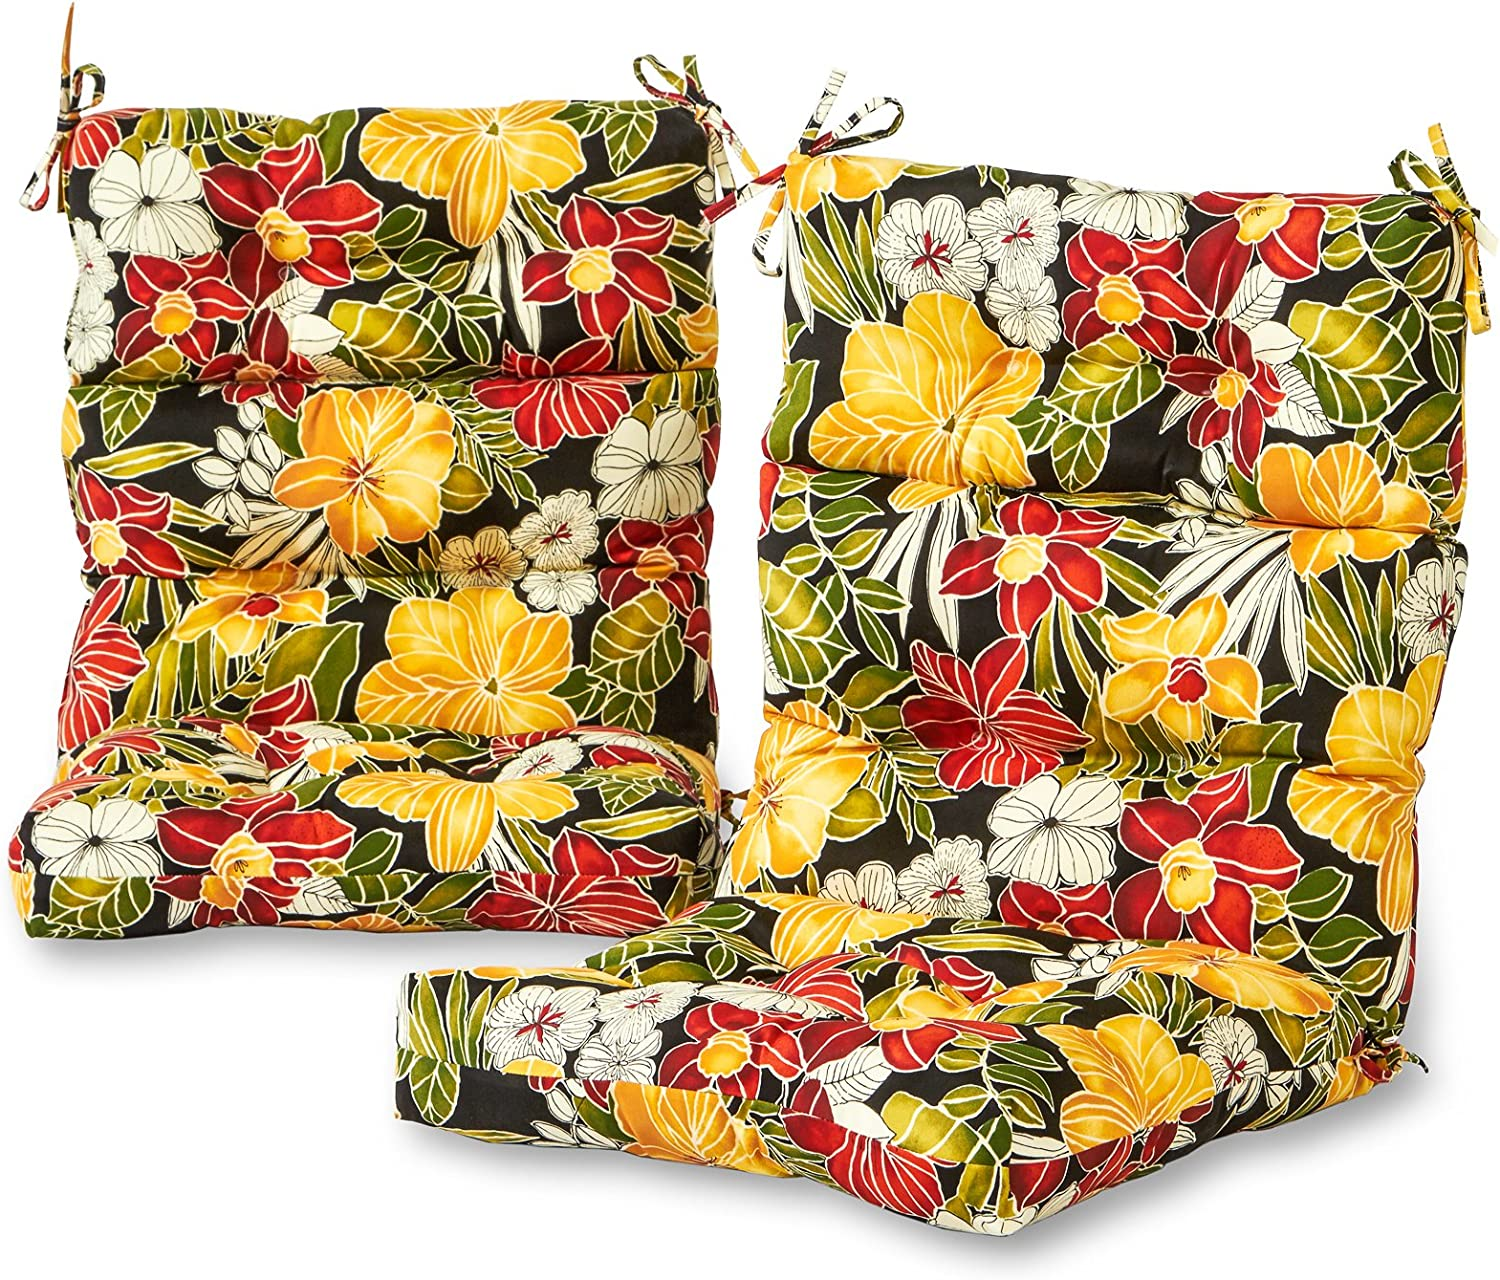 Greendale Home Fashions Outdoor High Back Chair Cushion Set in Aloha Black, Set of 2